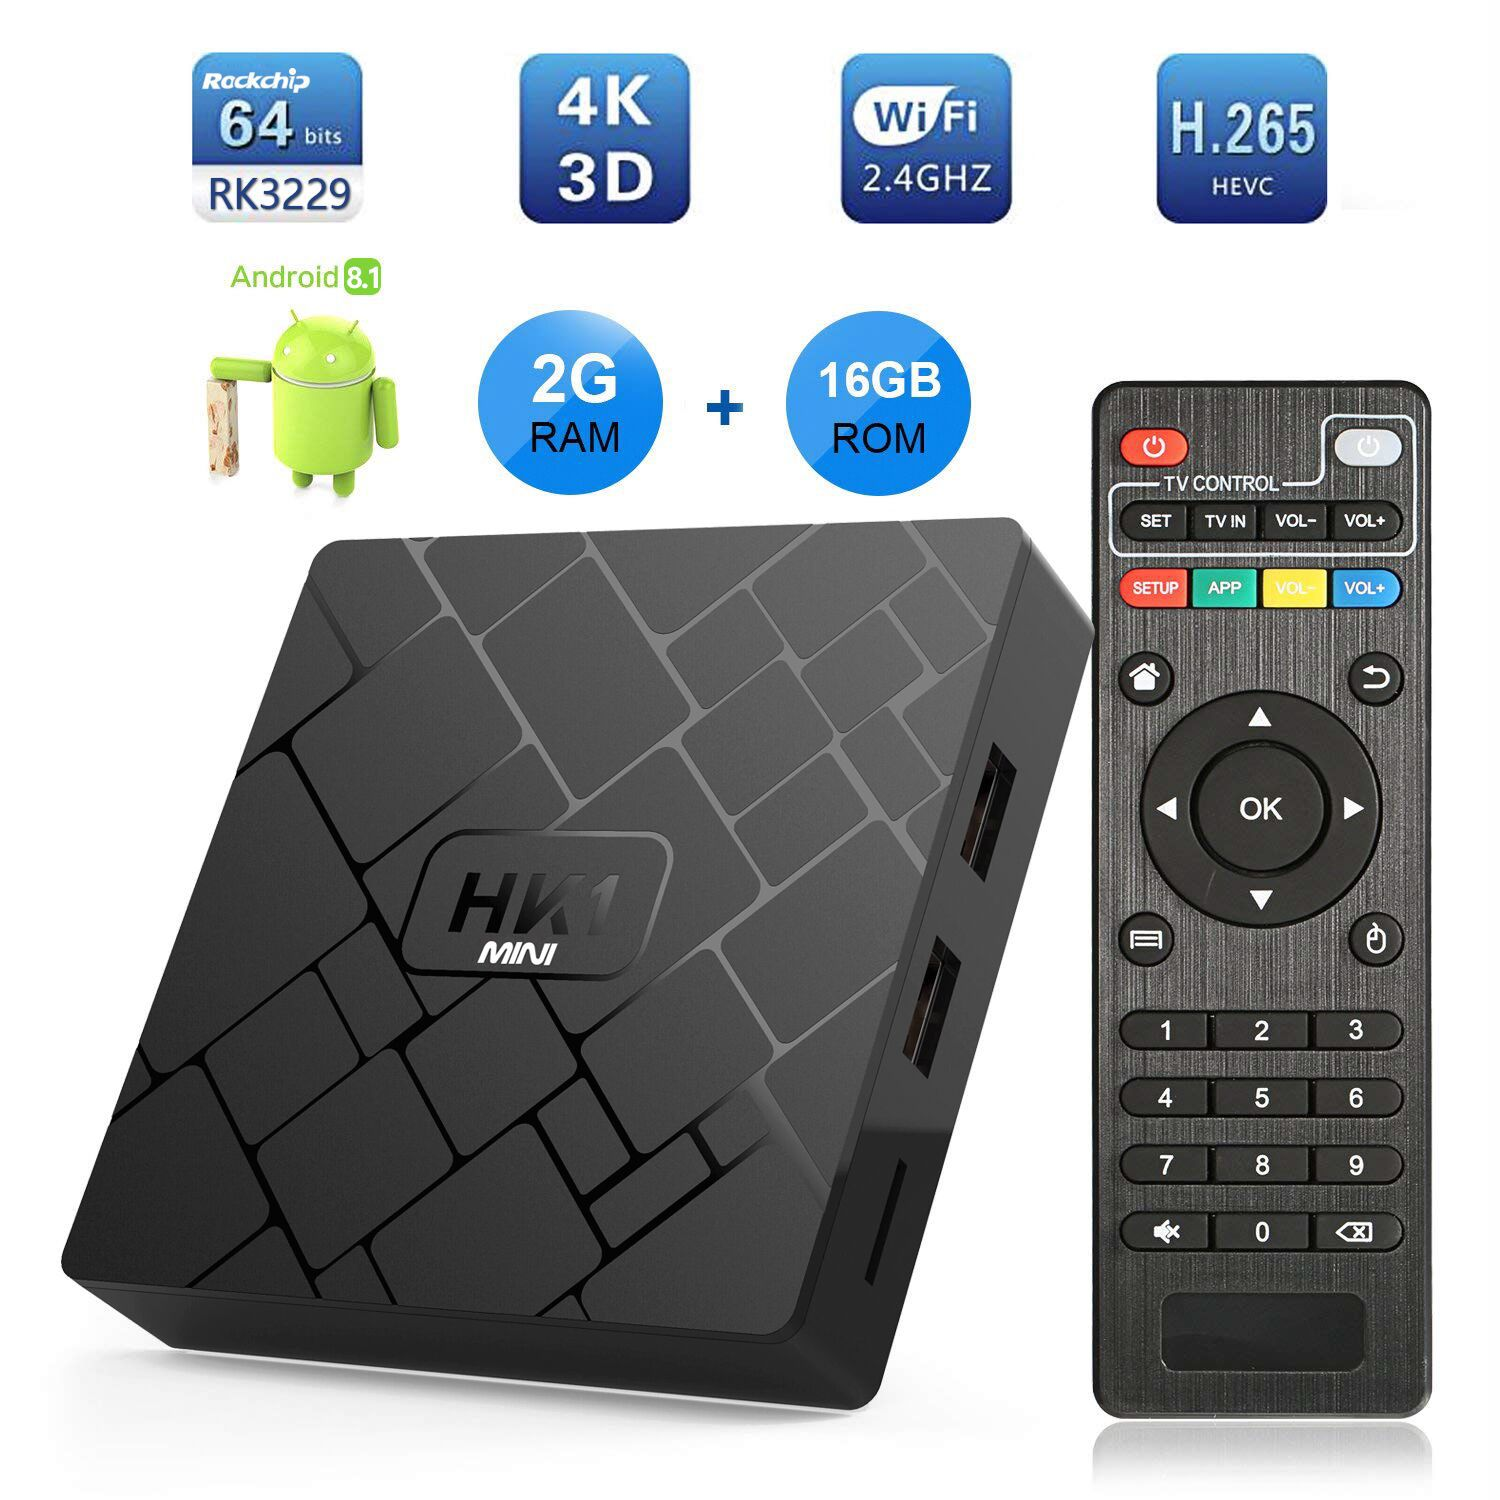 HK1 Mini TV BOX Smart Box RK3229 Android 7.1 2G/16G Wifi